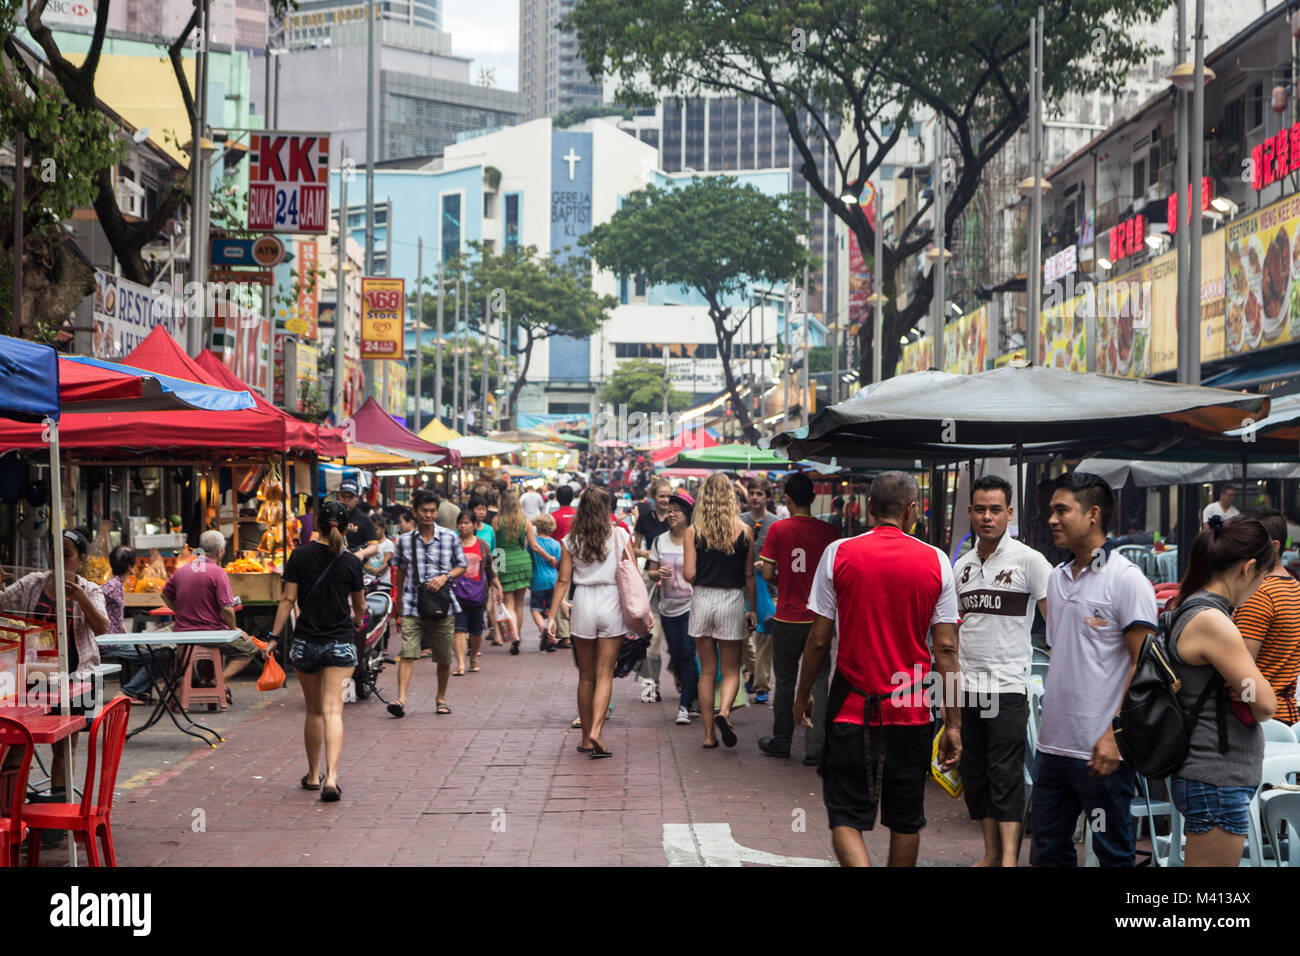 Kuala Lumpur, Malaysia - December 22 2017: Tourists and locals wander along Jalan Alor famous for its chinese food - Stock Image